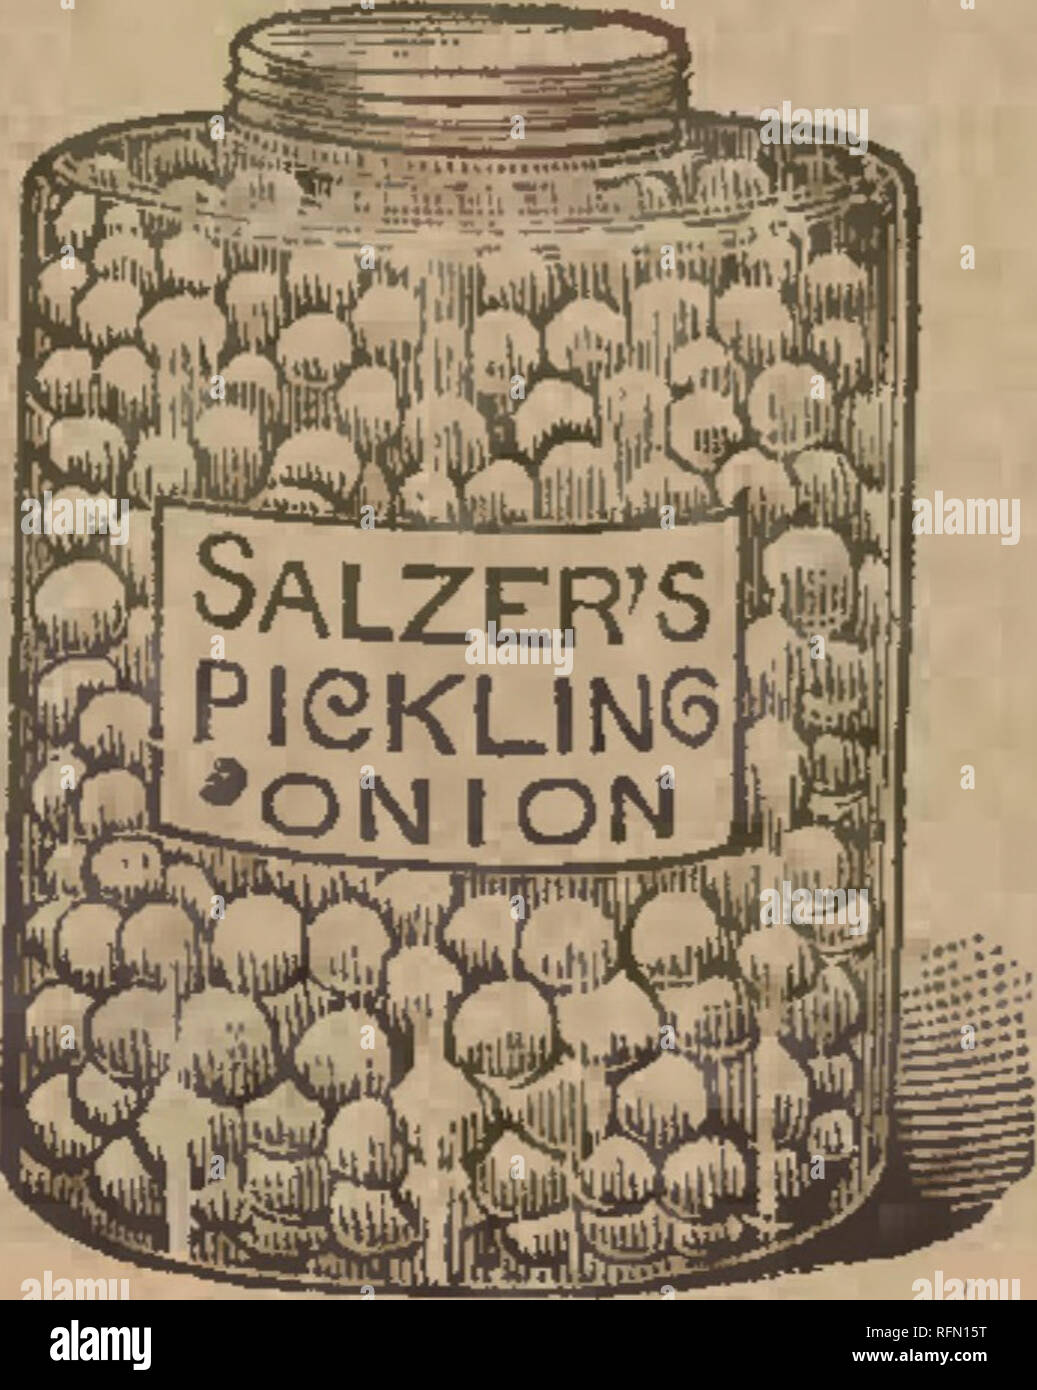 . Spring 1897. Nursery stock Wisconsin Catalogs; Fruit Catalogs; Flowers Seeds Catalogs; Vegetables Seeds Catalogs; Cereal grasses Seeds Catalogs; Grasses Seeds Catalogs. Pkg:., lOc.; 02.. PRICE OF THE GREAT GIANT SILVER KINO ONION, HIGHEST GRADB* 20c.; ^ lb., 60c.; lb., S1.90; 2 lbs., «3.60; 4 lbs., »6.75. postpaid. P^,f??f:^f^^L*l*;M*' P*^8^*' ! • 5i lb., 46c.; lb., »1.»0; 3 lbs., «3.30: 4 lbs.; $6.30. LOW PRICED SILVER KING ONION SEED: Pkg., ec: oz., 16c.: ^p^ ou. K lb., 35c.; lb., S1.25. postpaid. •» , New Queen. The earliest, finest of all white Onions. A perfect queen in the fi'^ld; of d - Stock Image